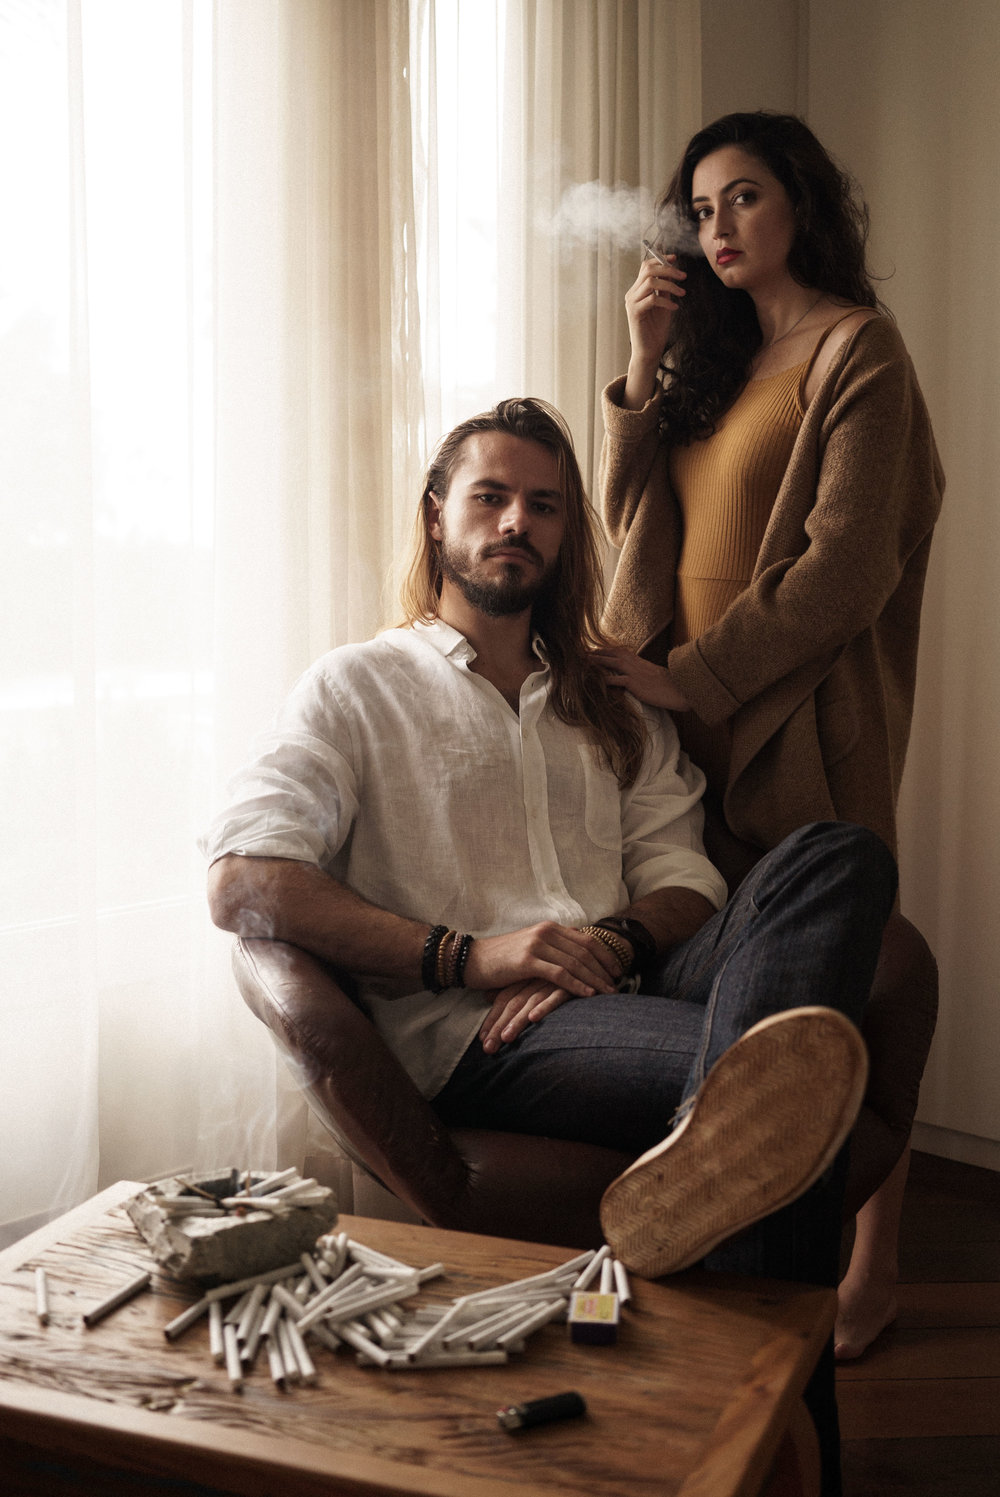 Lucas and Isabelle sometimes want to quit smoking - FOTOGRAFIA